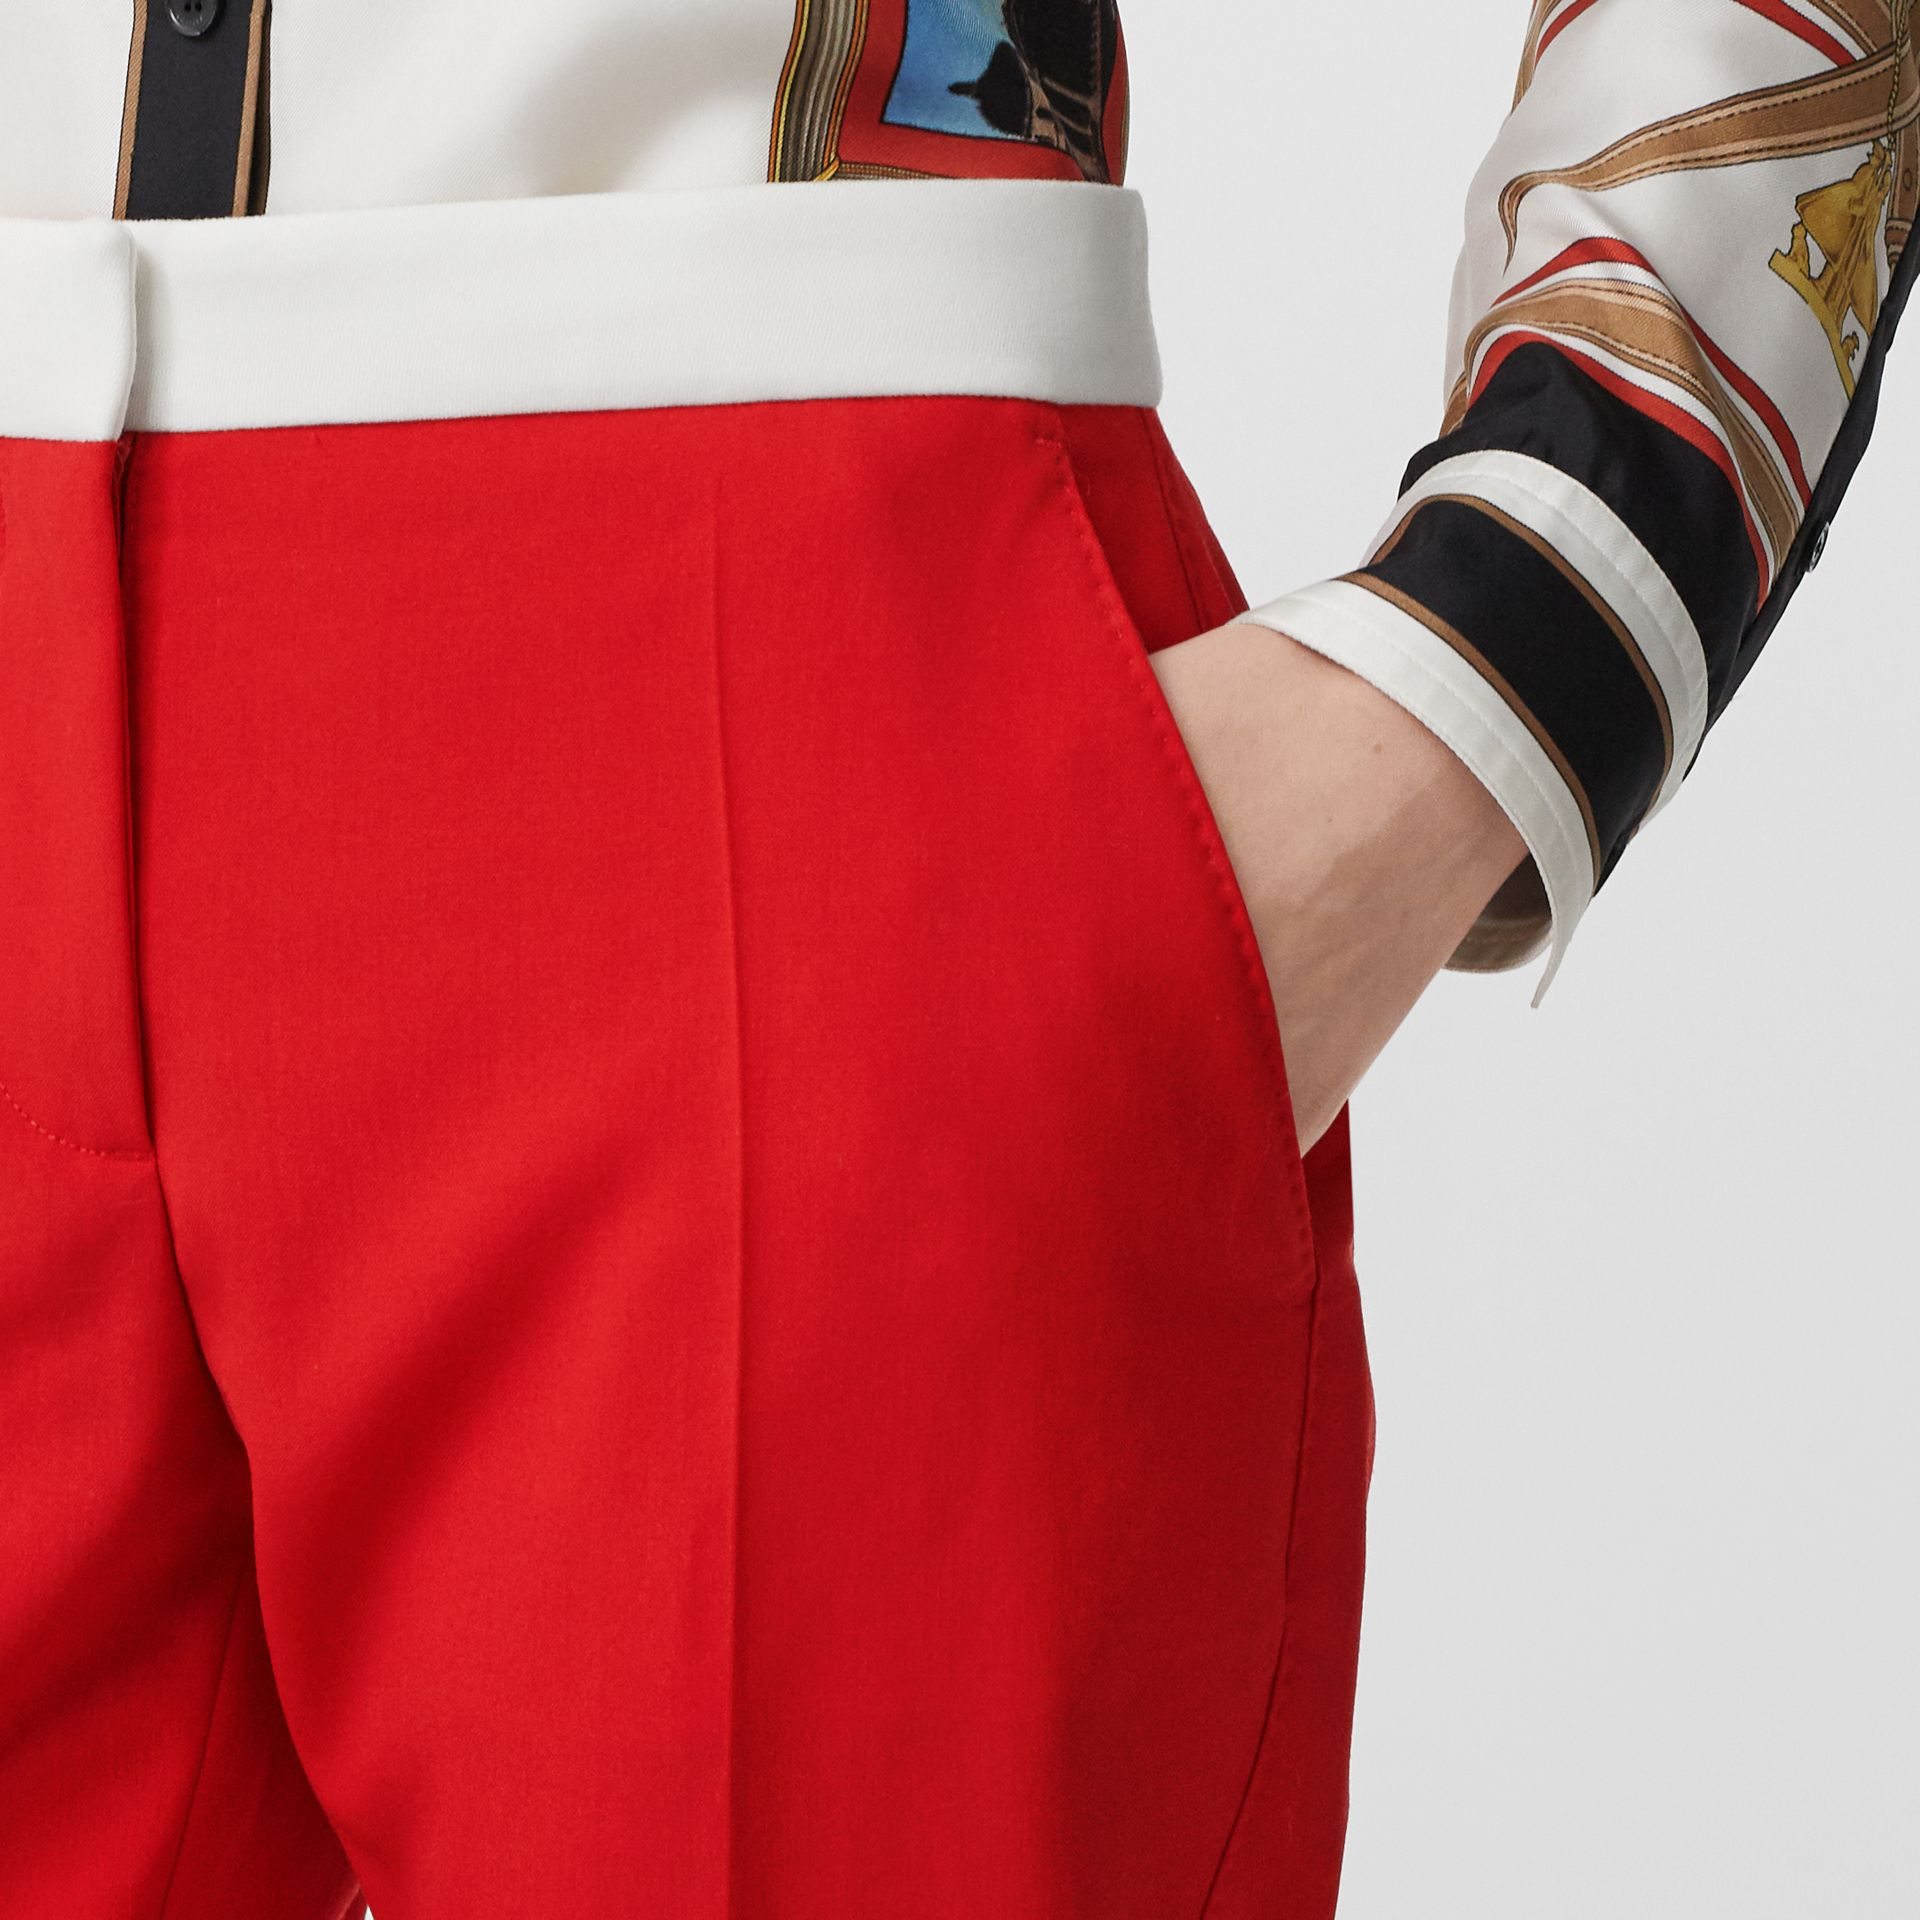 Two-tone Wool Tailored Trousers in Bright Red - Women | Burberry United States - gallery image 1